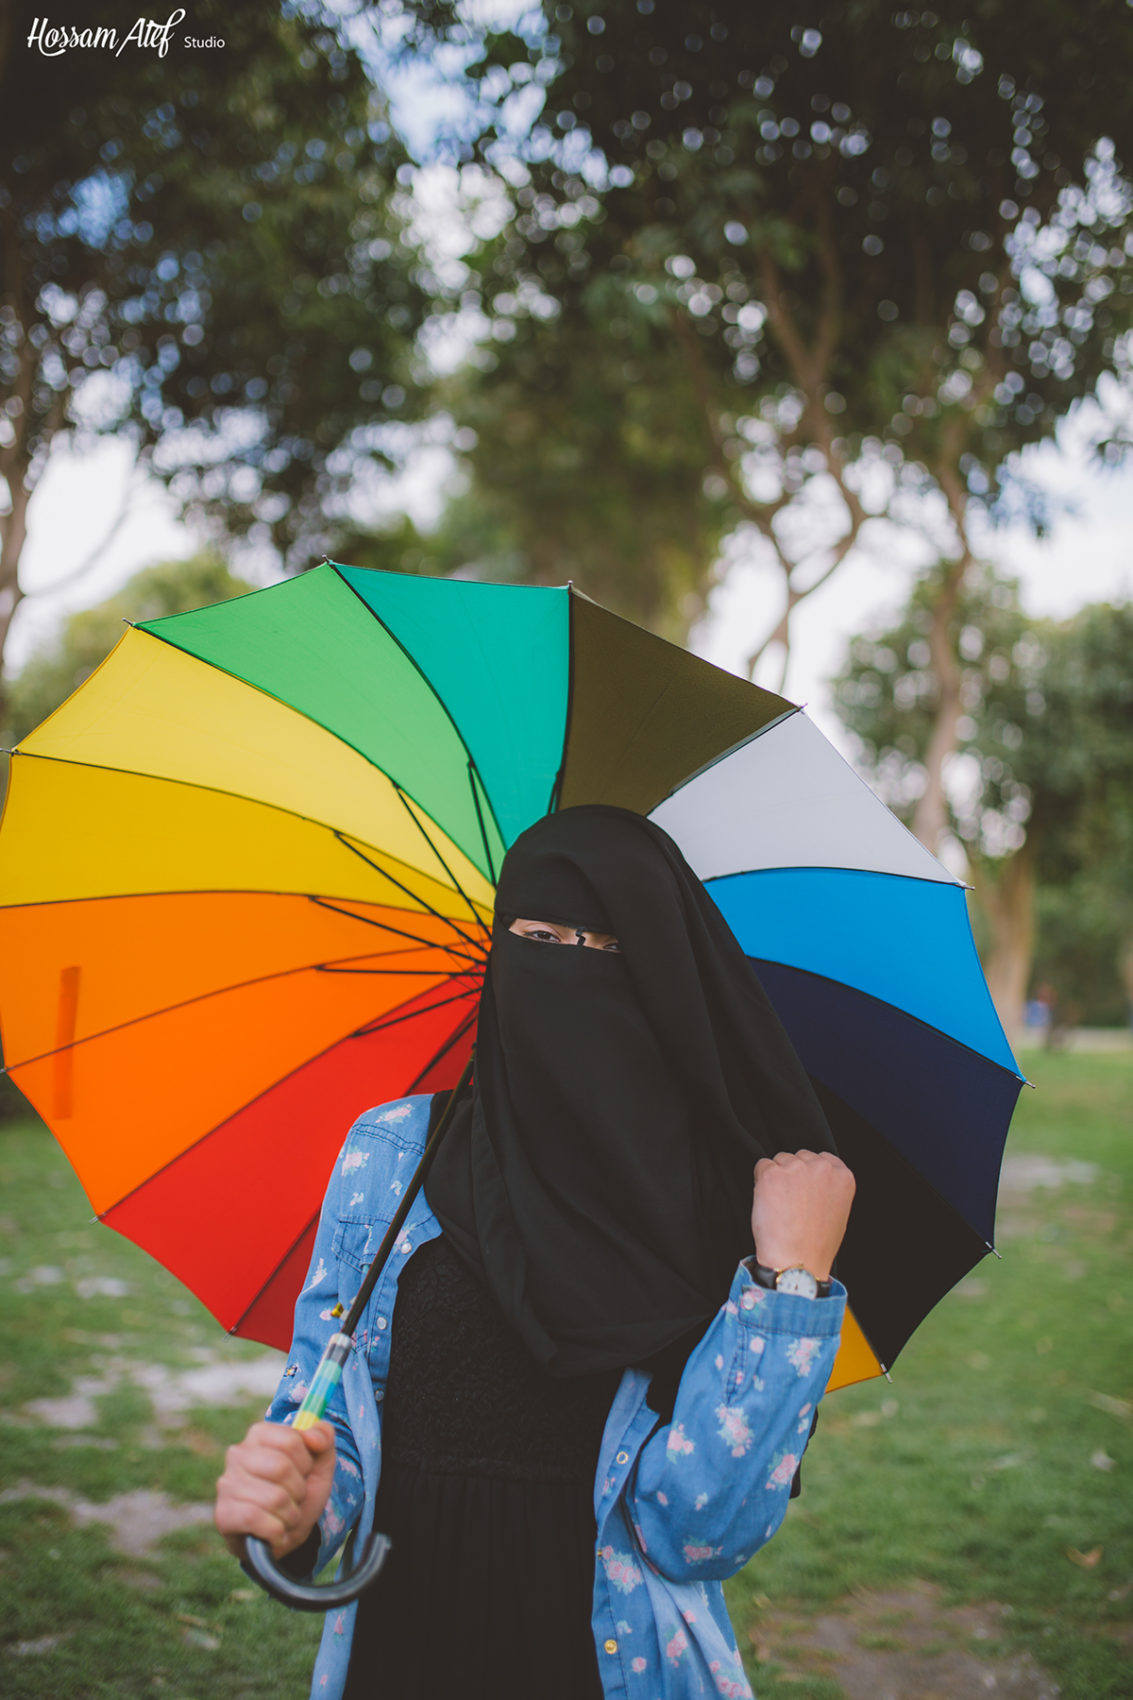 beautiful photoshoot muslim girl in niqab 99inspiration